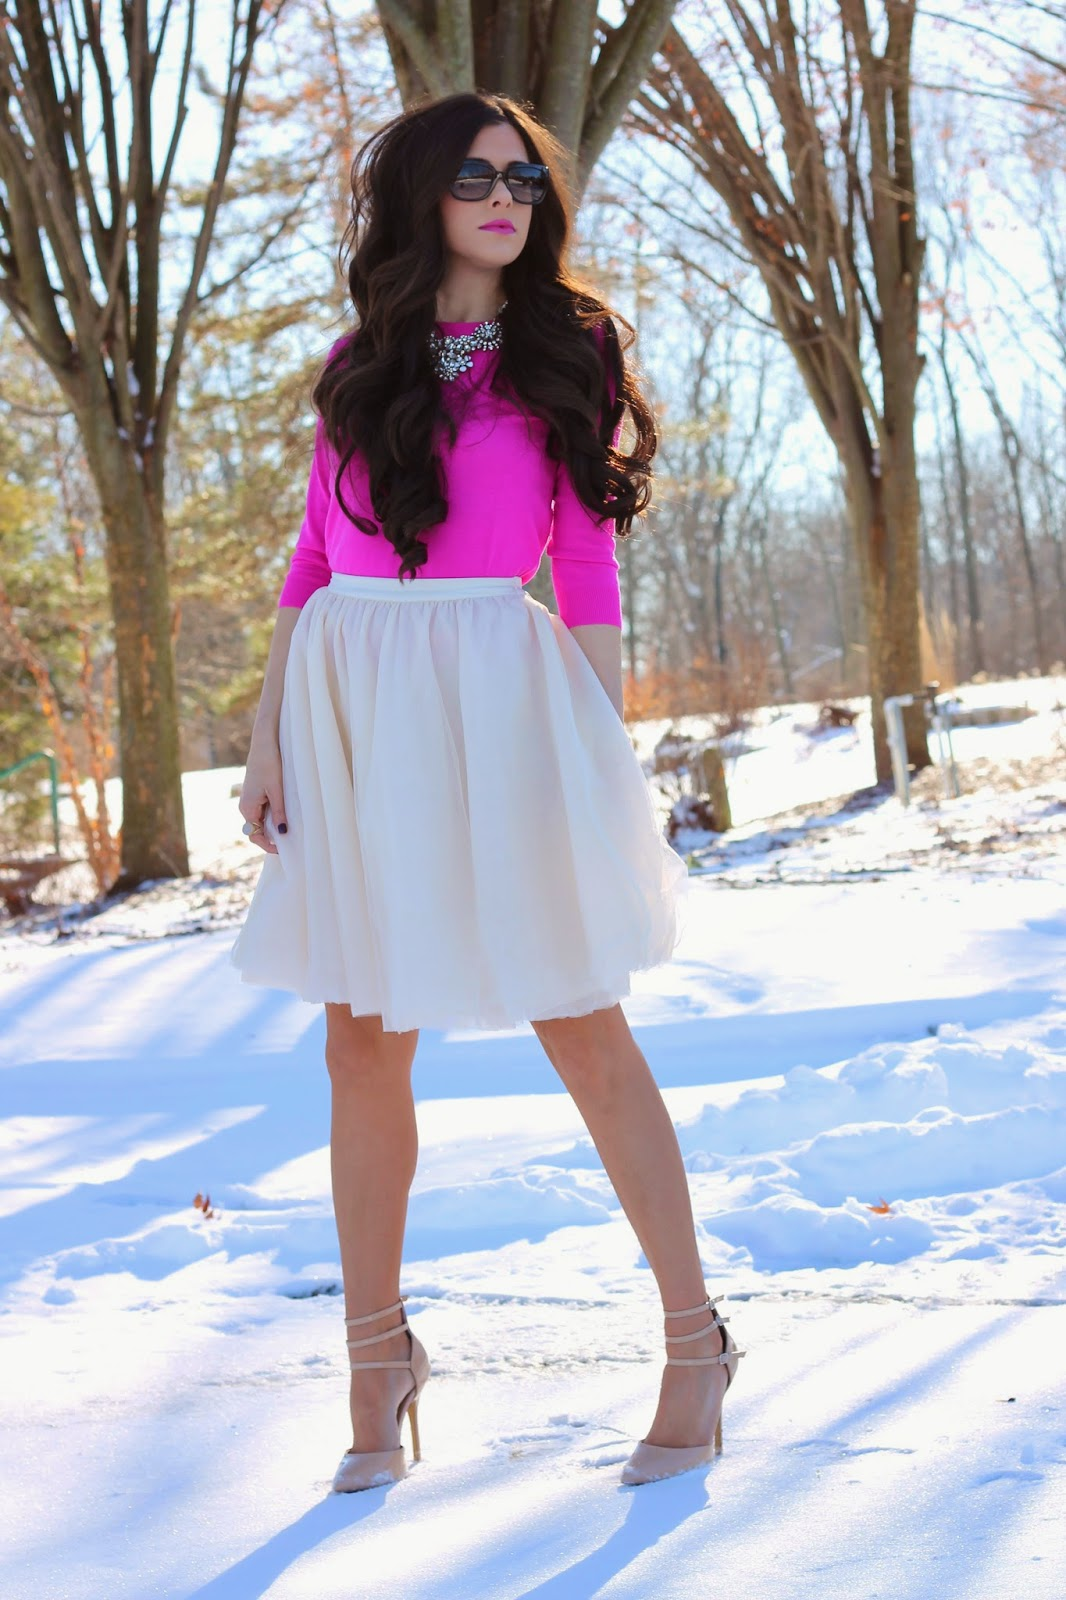 hot pink sweater, hair extensions, bellami hair extensions, nude pumps, crystal necklace, jcrew necklace, tulle skirt, cream tulle skirt, elysian boutique, jcrew, jcrew factory, fashion blog, style blog, winter pinterest trends, fashion pinterest, winter pinterest fashion, emily gemma, www.thesweetestthingblog.com, prada timeless square sunglasses